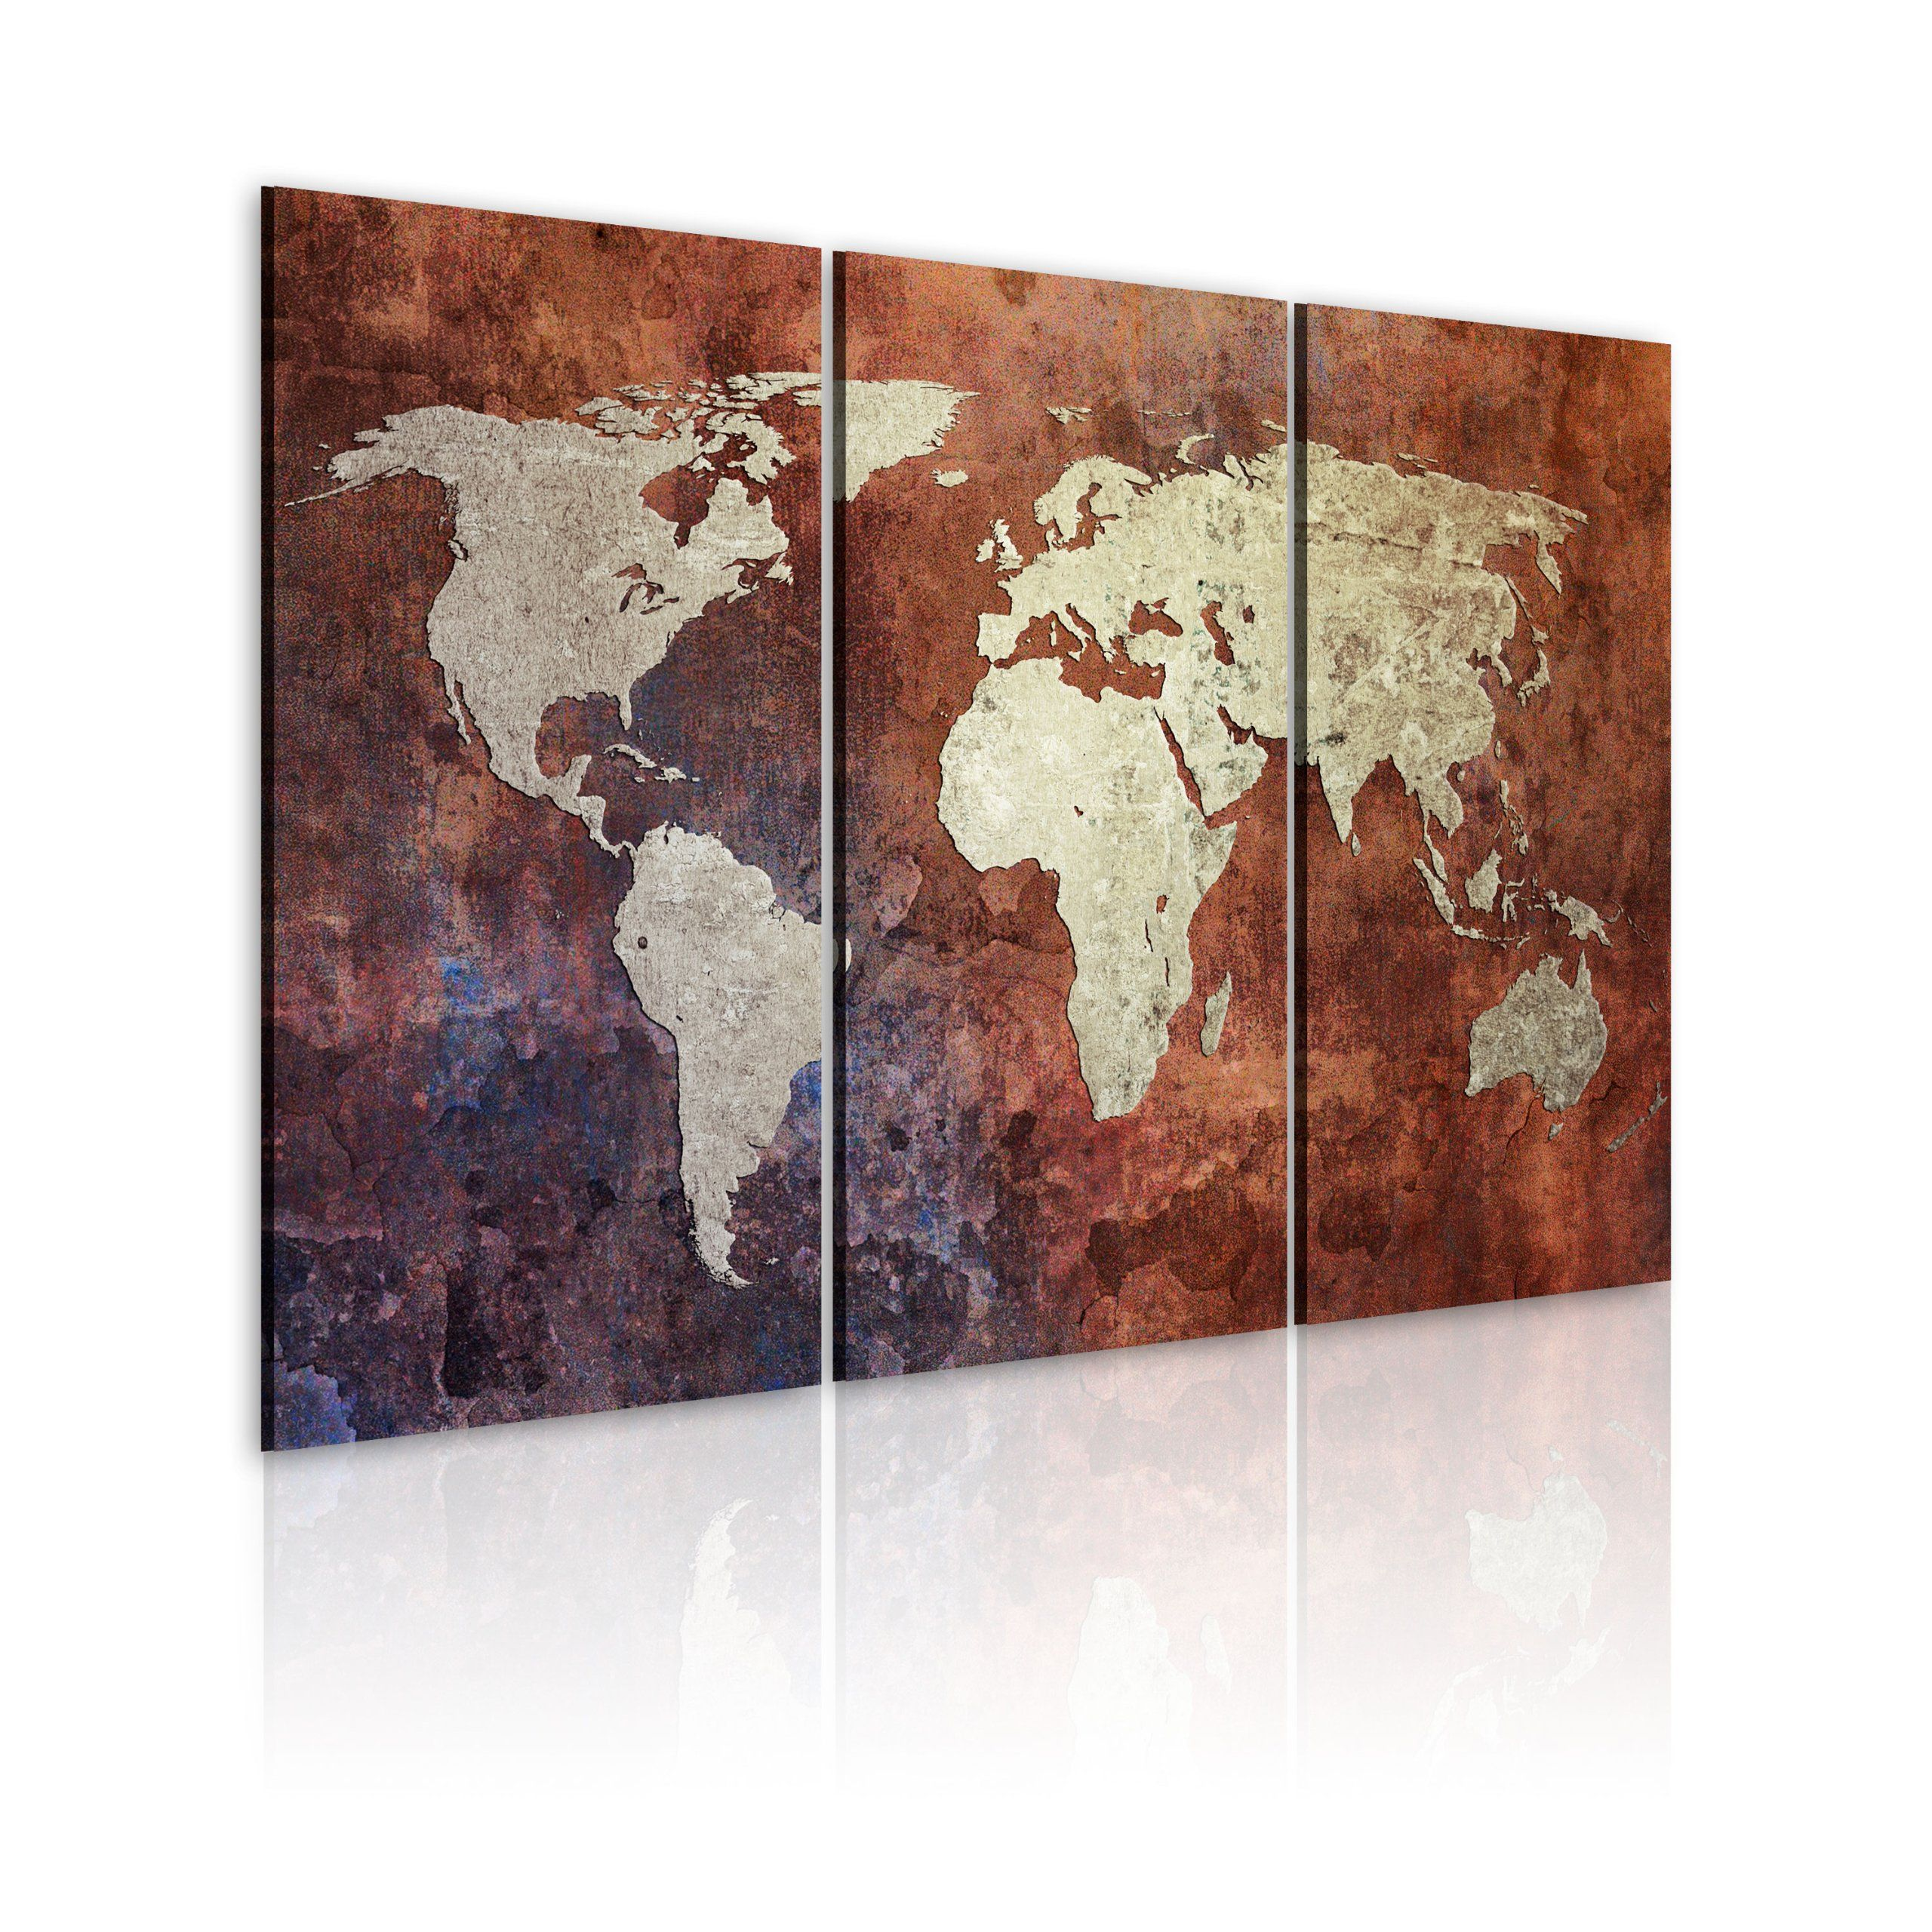 grand format impression sur toile images 3 parties carte du monde tableau 020113 35